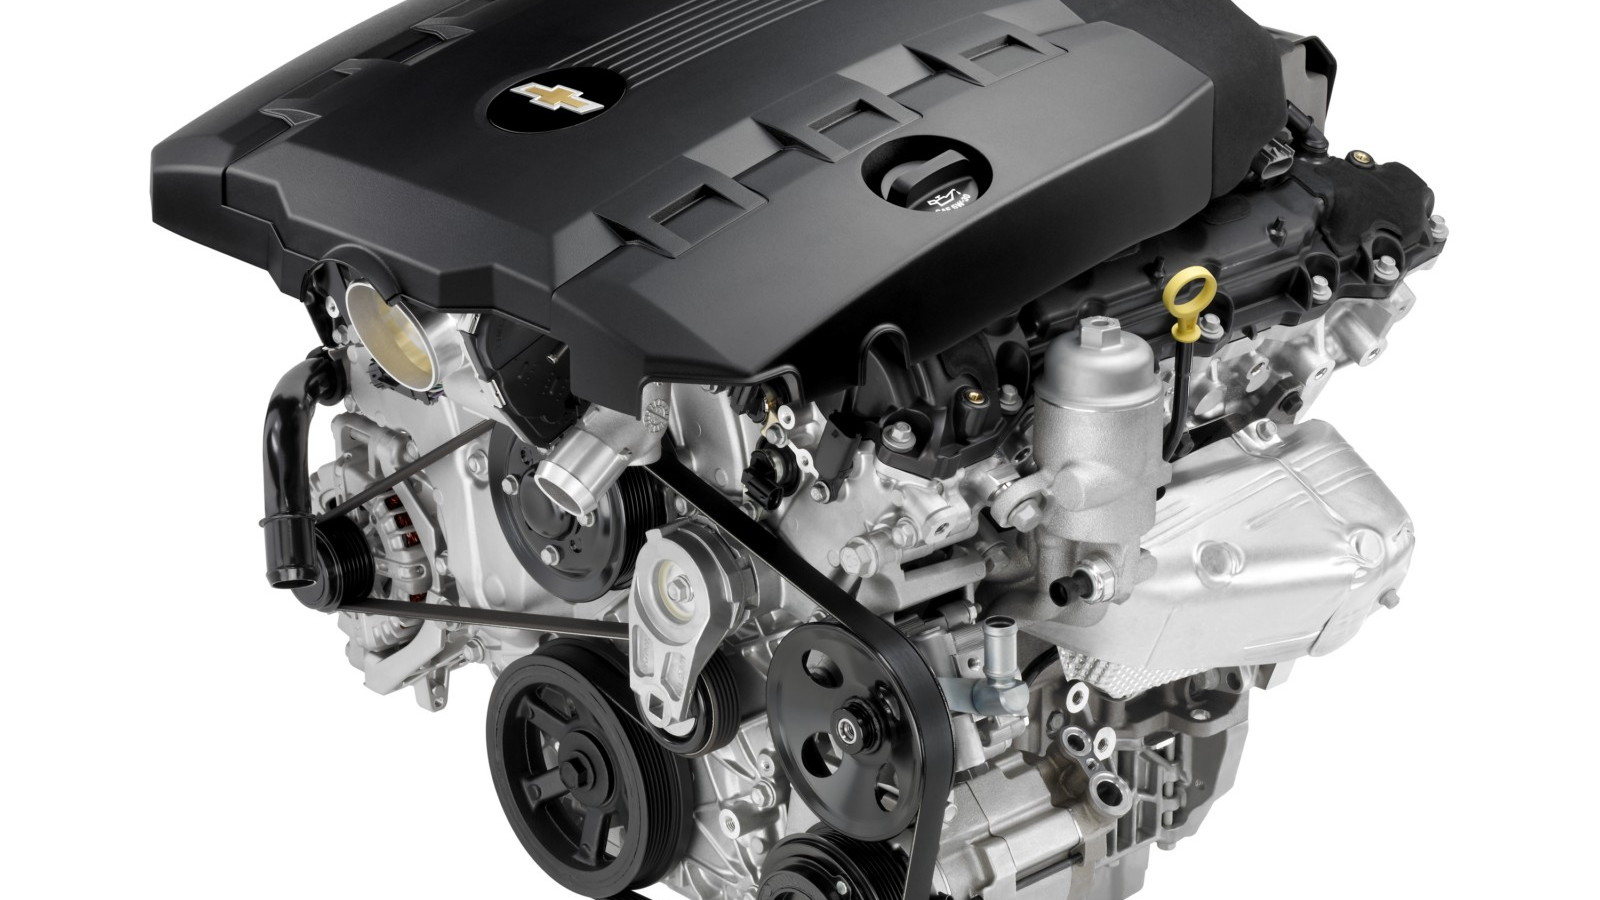 2010 Camaro V-6 engine